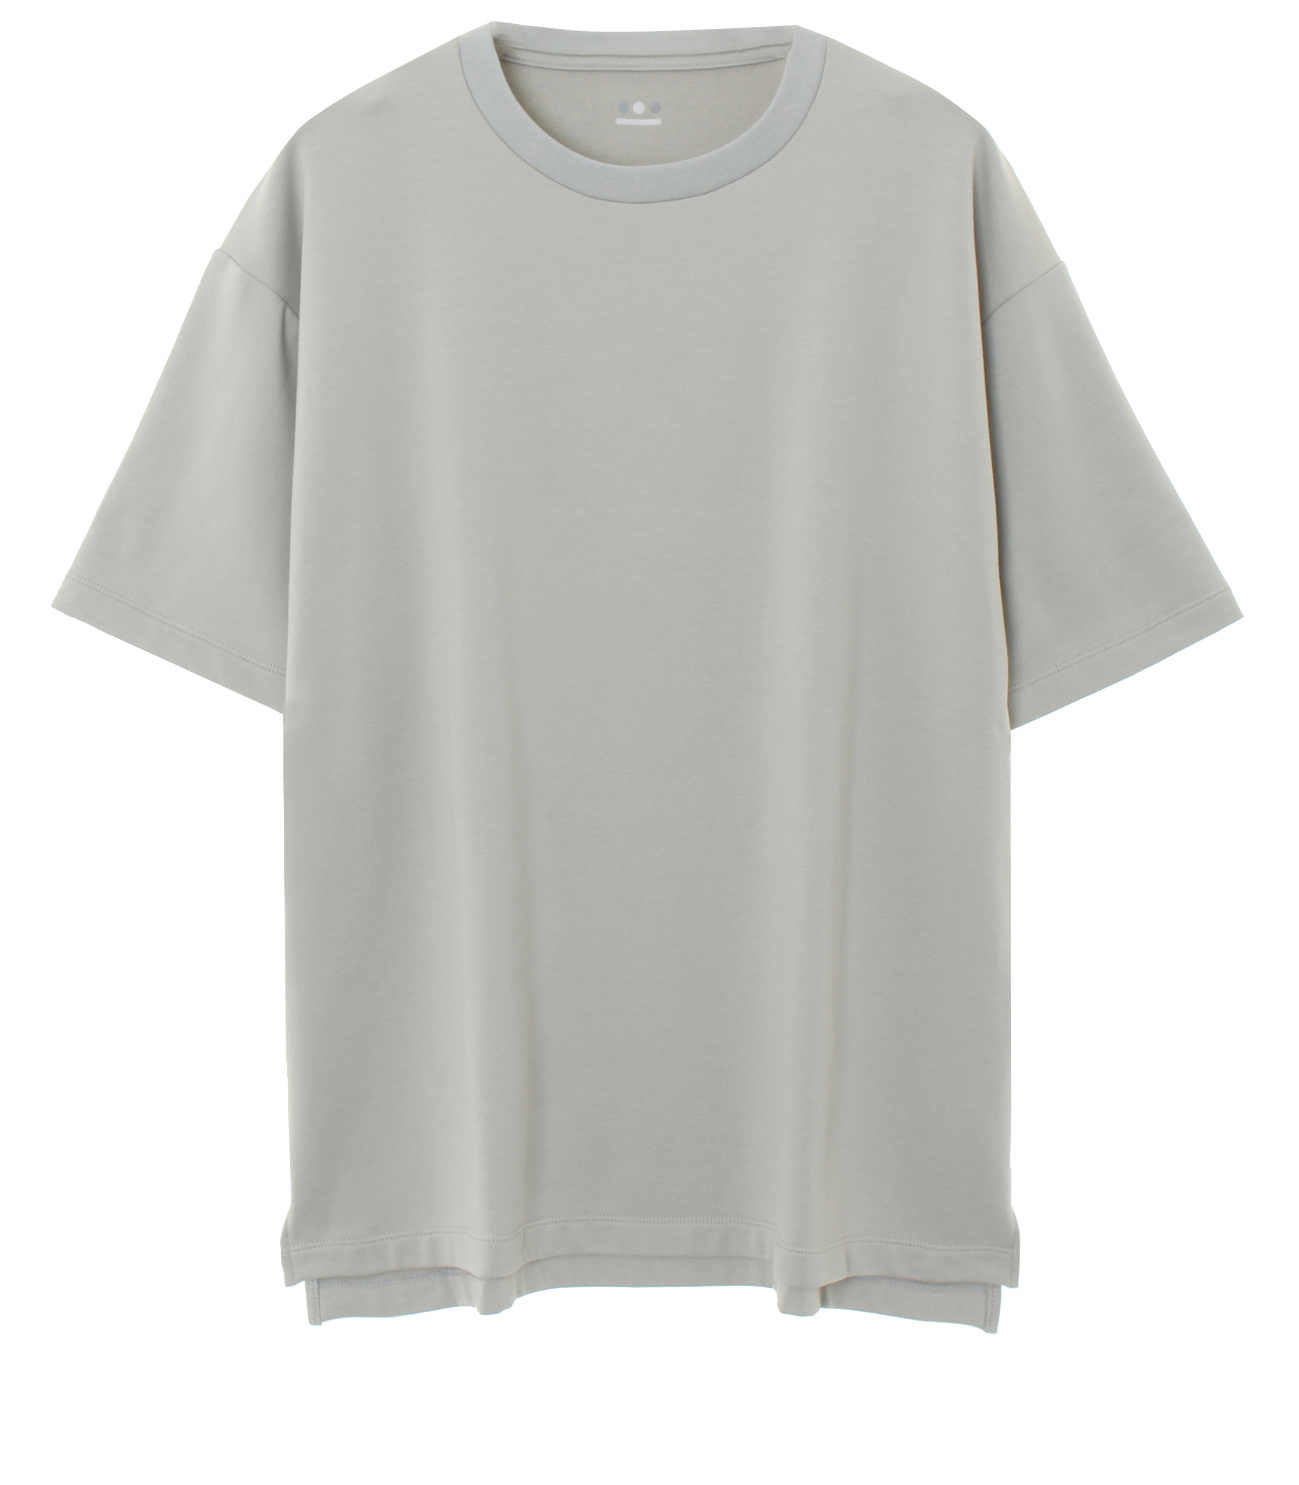 stretch terry s/s crewneck 詳細画像 pale grey 1